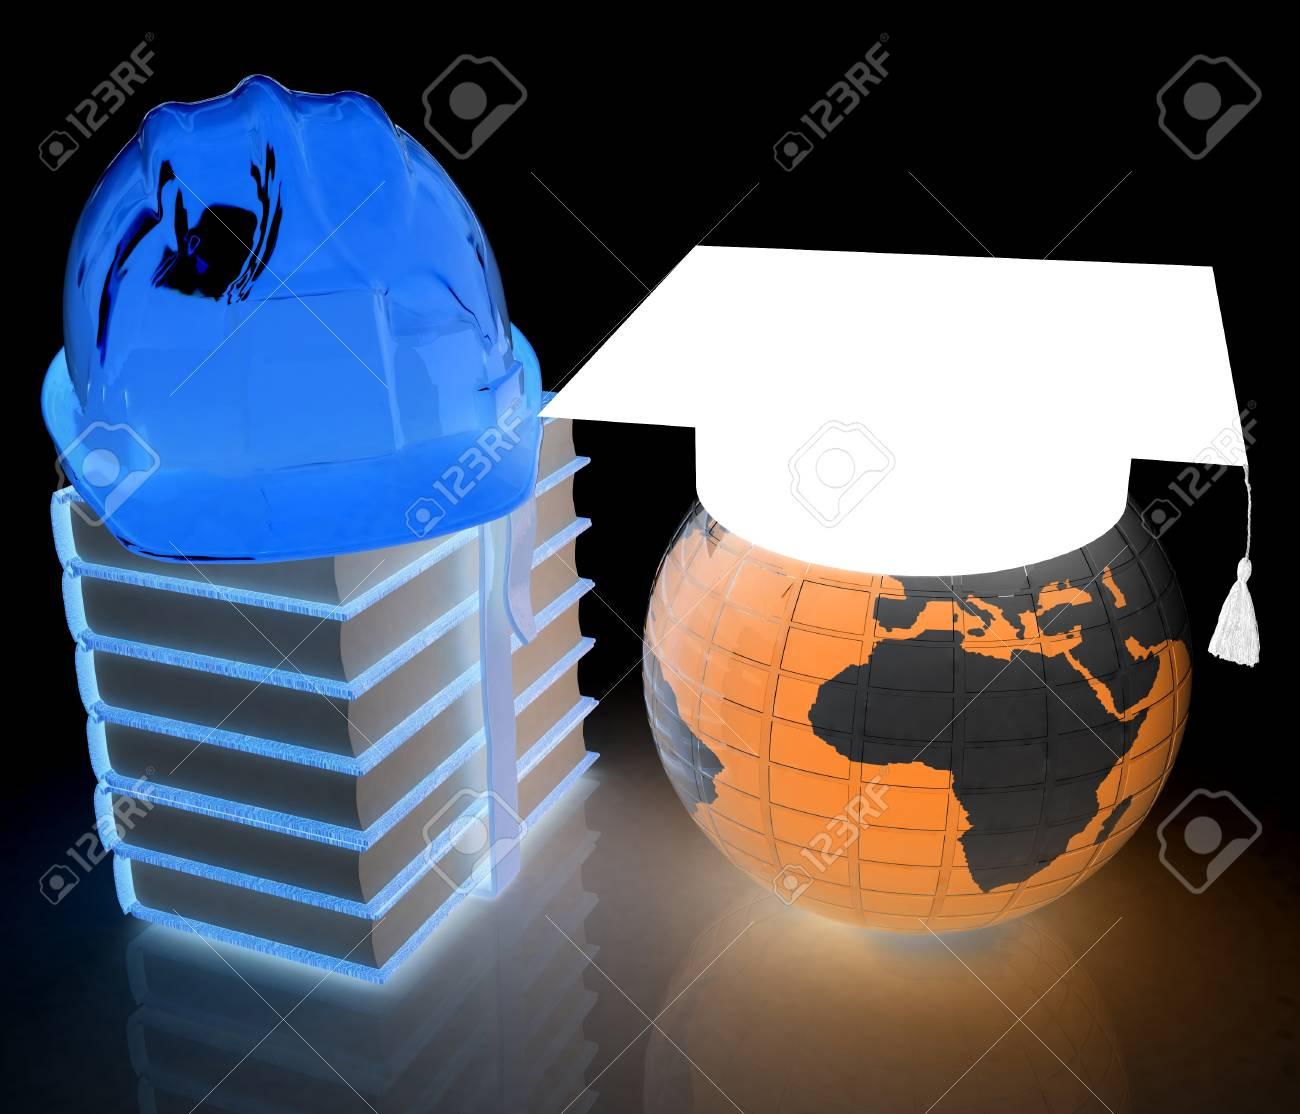 Earth, book, hard hat and graduation hat  Global edication and